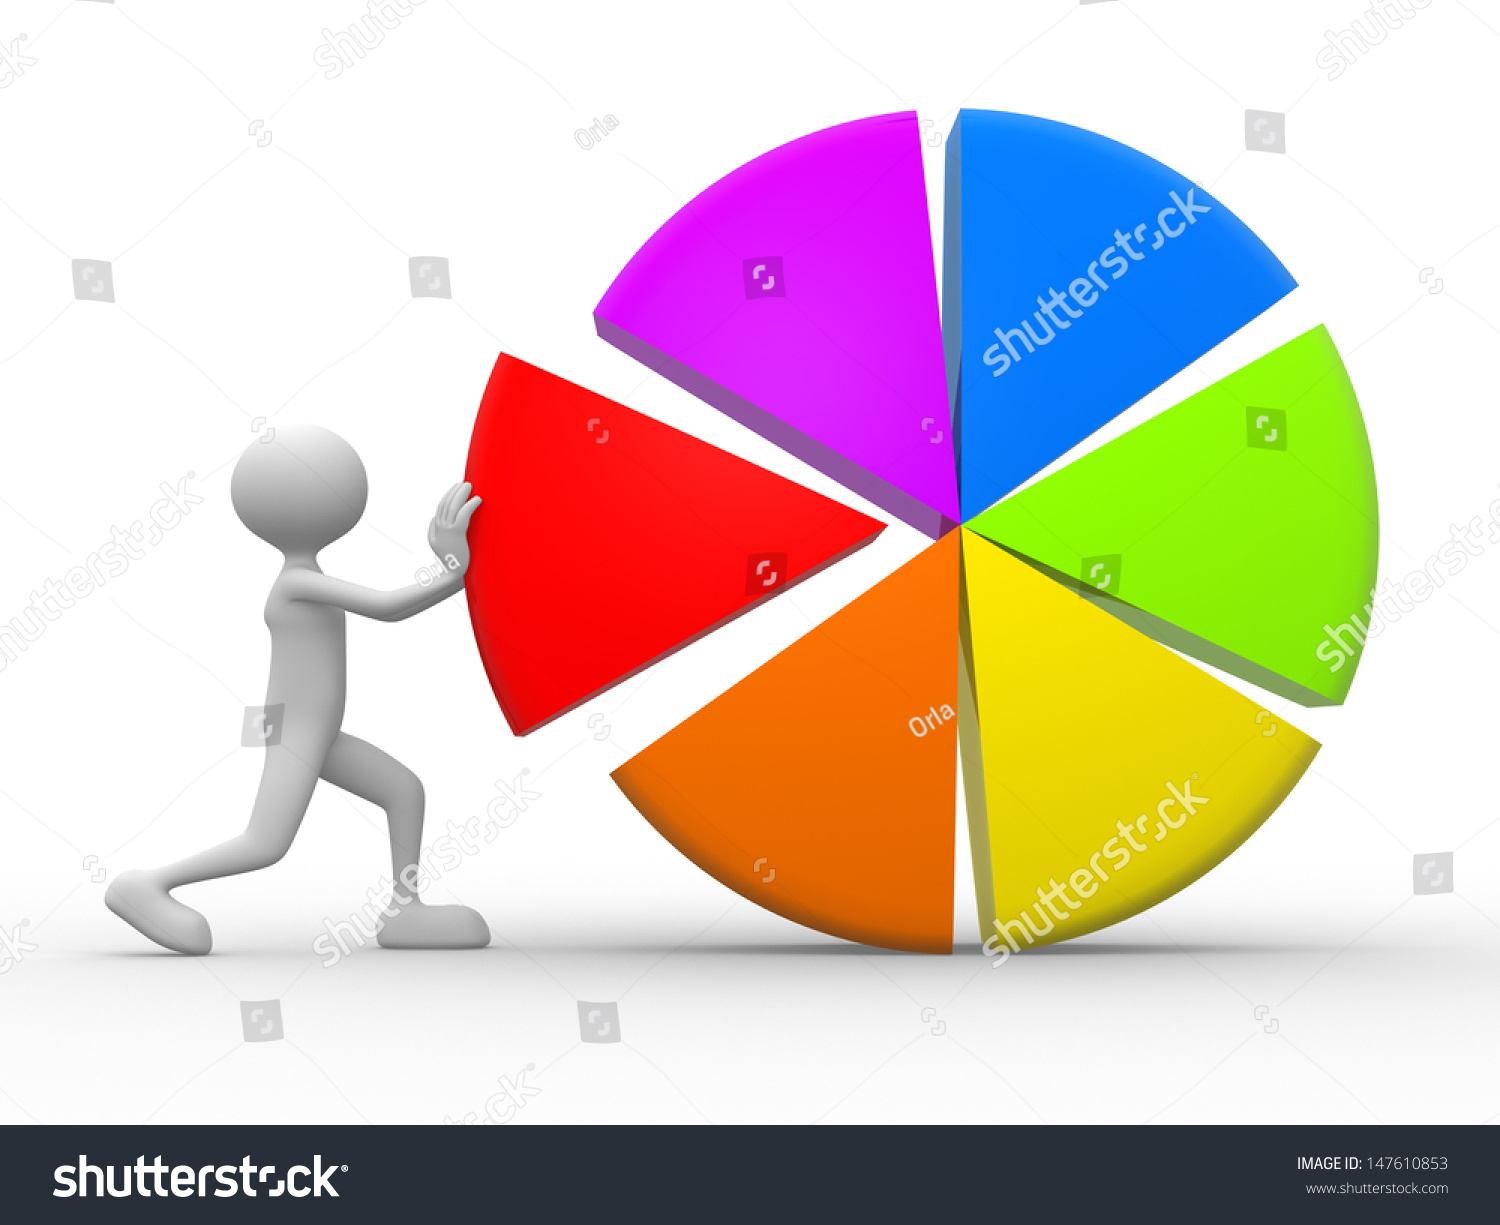 3d people man pie chart stock illustration 147610853 shutterstock 3d people man and pie chart geenschuldenfo Image collections